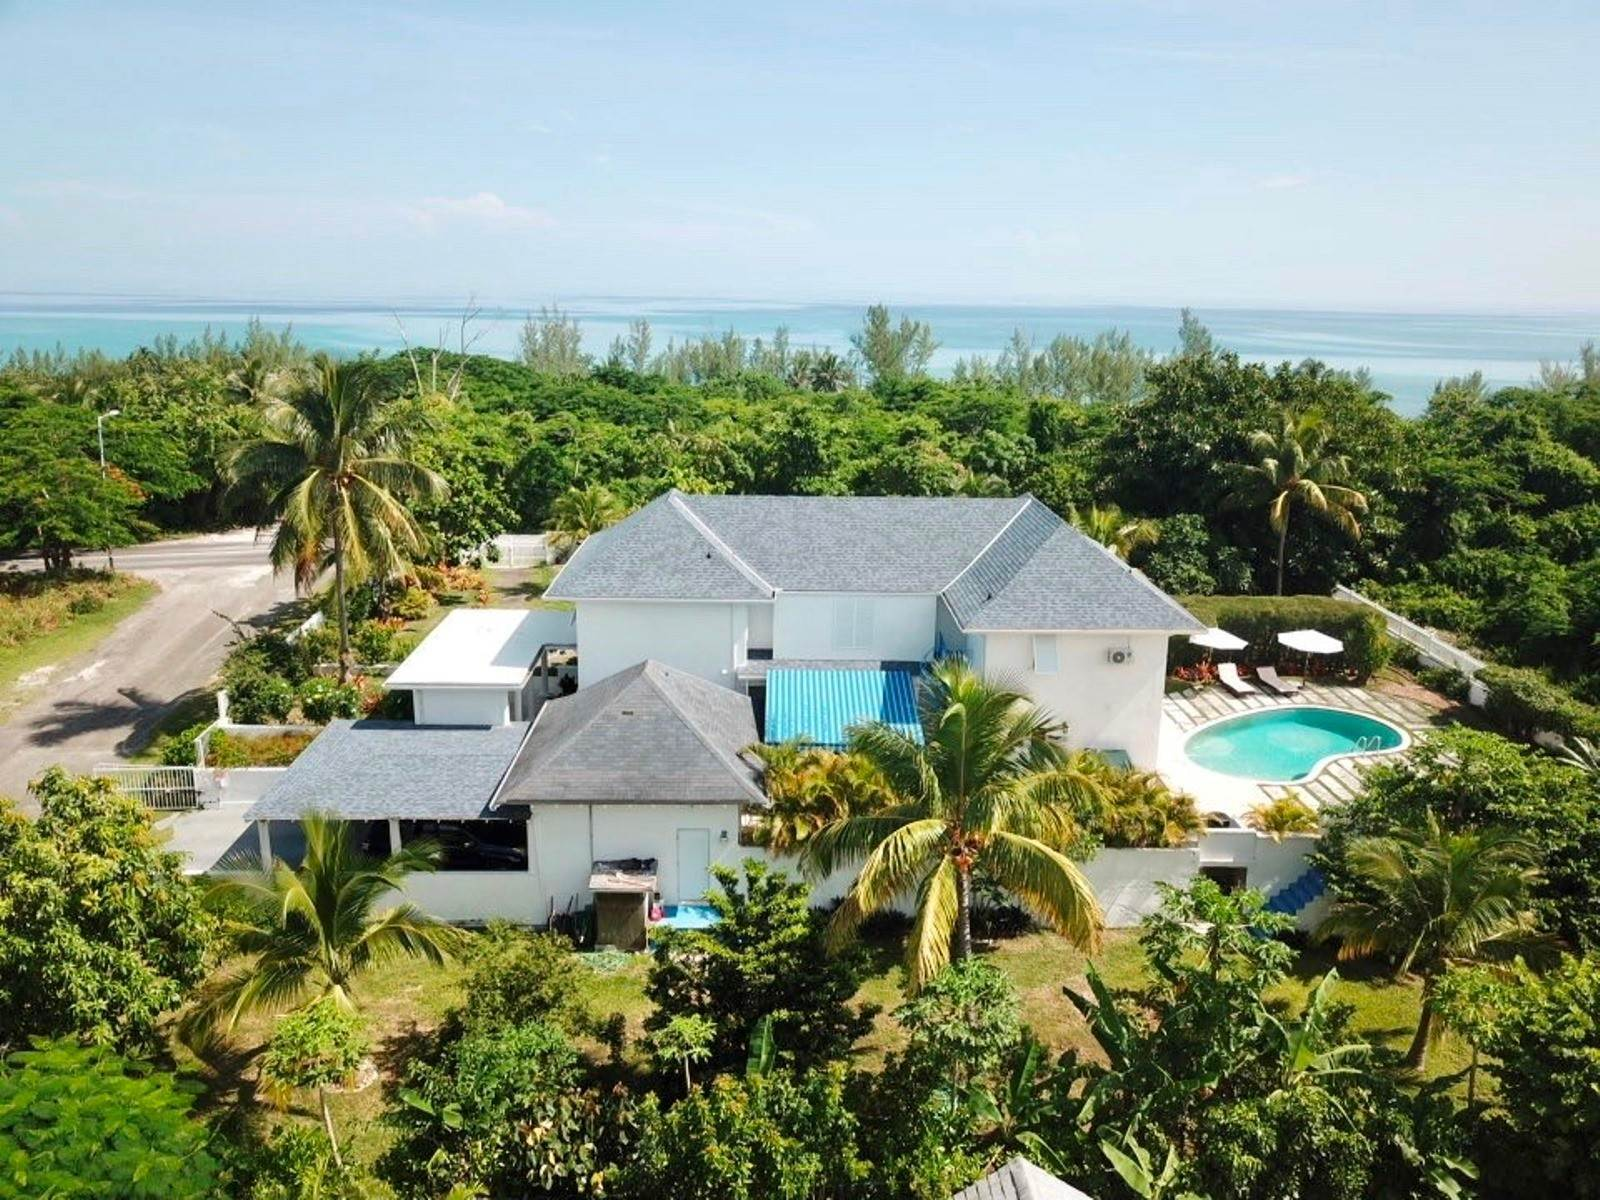 Single Family Homes for Sale at Elegant Western Estate Home with Deeded Beach Access - MLS 41563 Love Beach, Nassau And Paradise Island, Bahamas